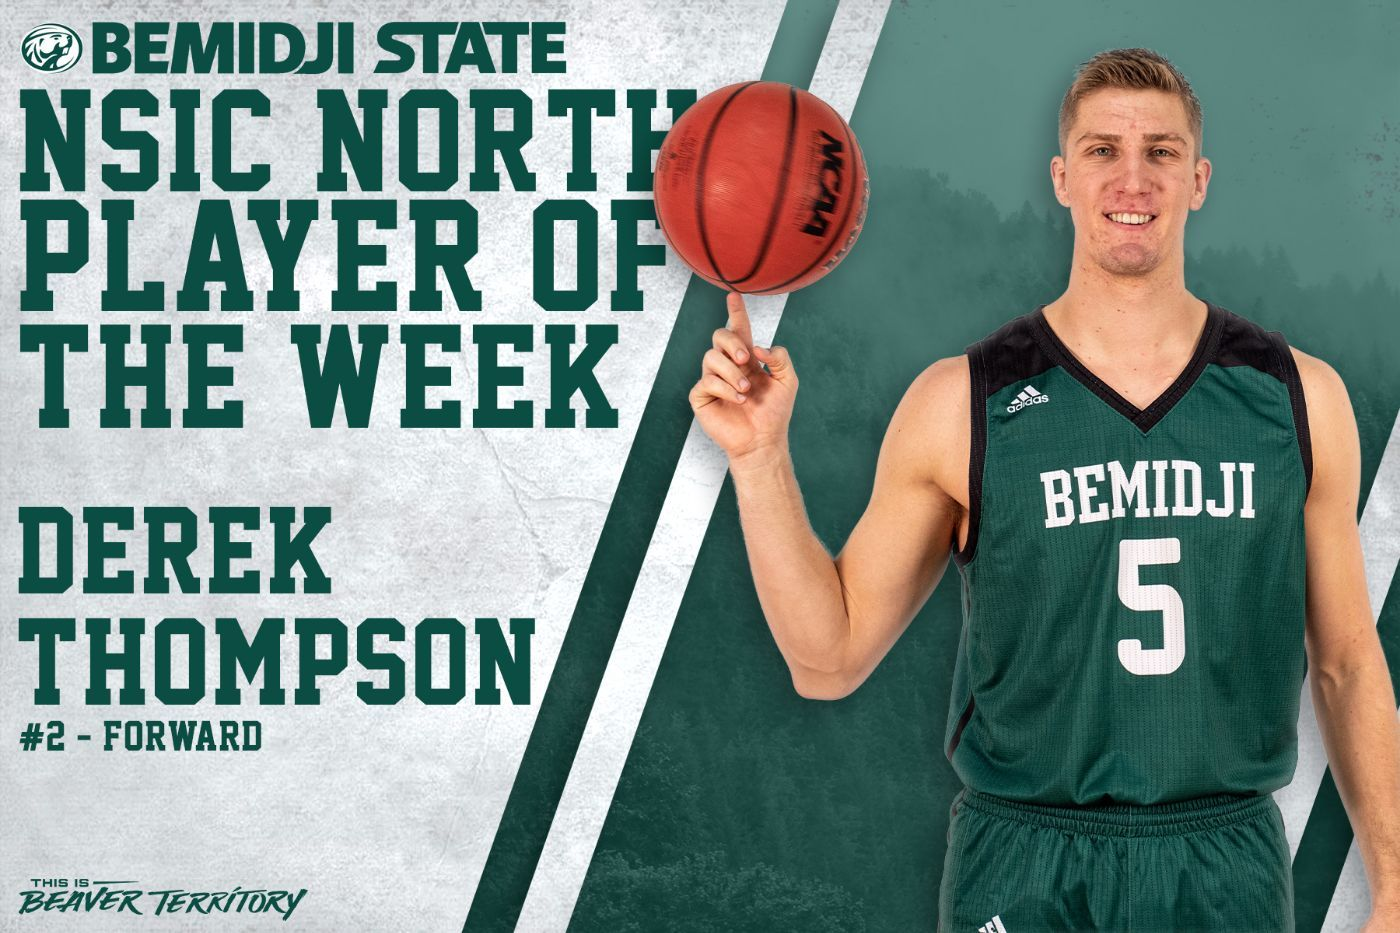 Thompson's career weekend helps earn final NSIC North Player of the Week honor